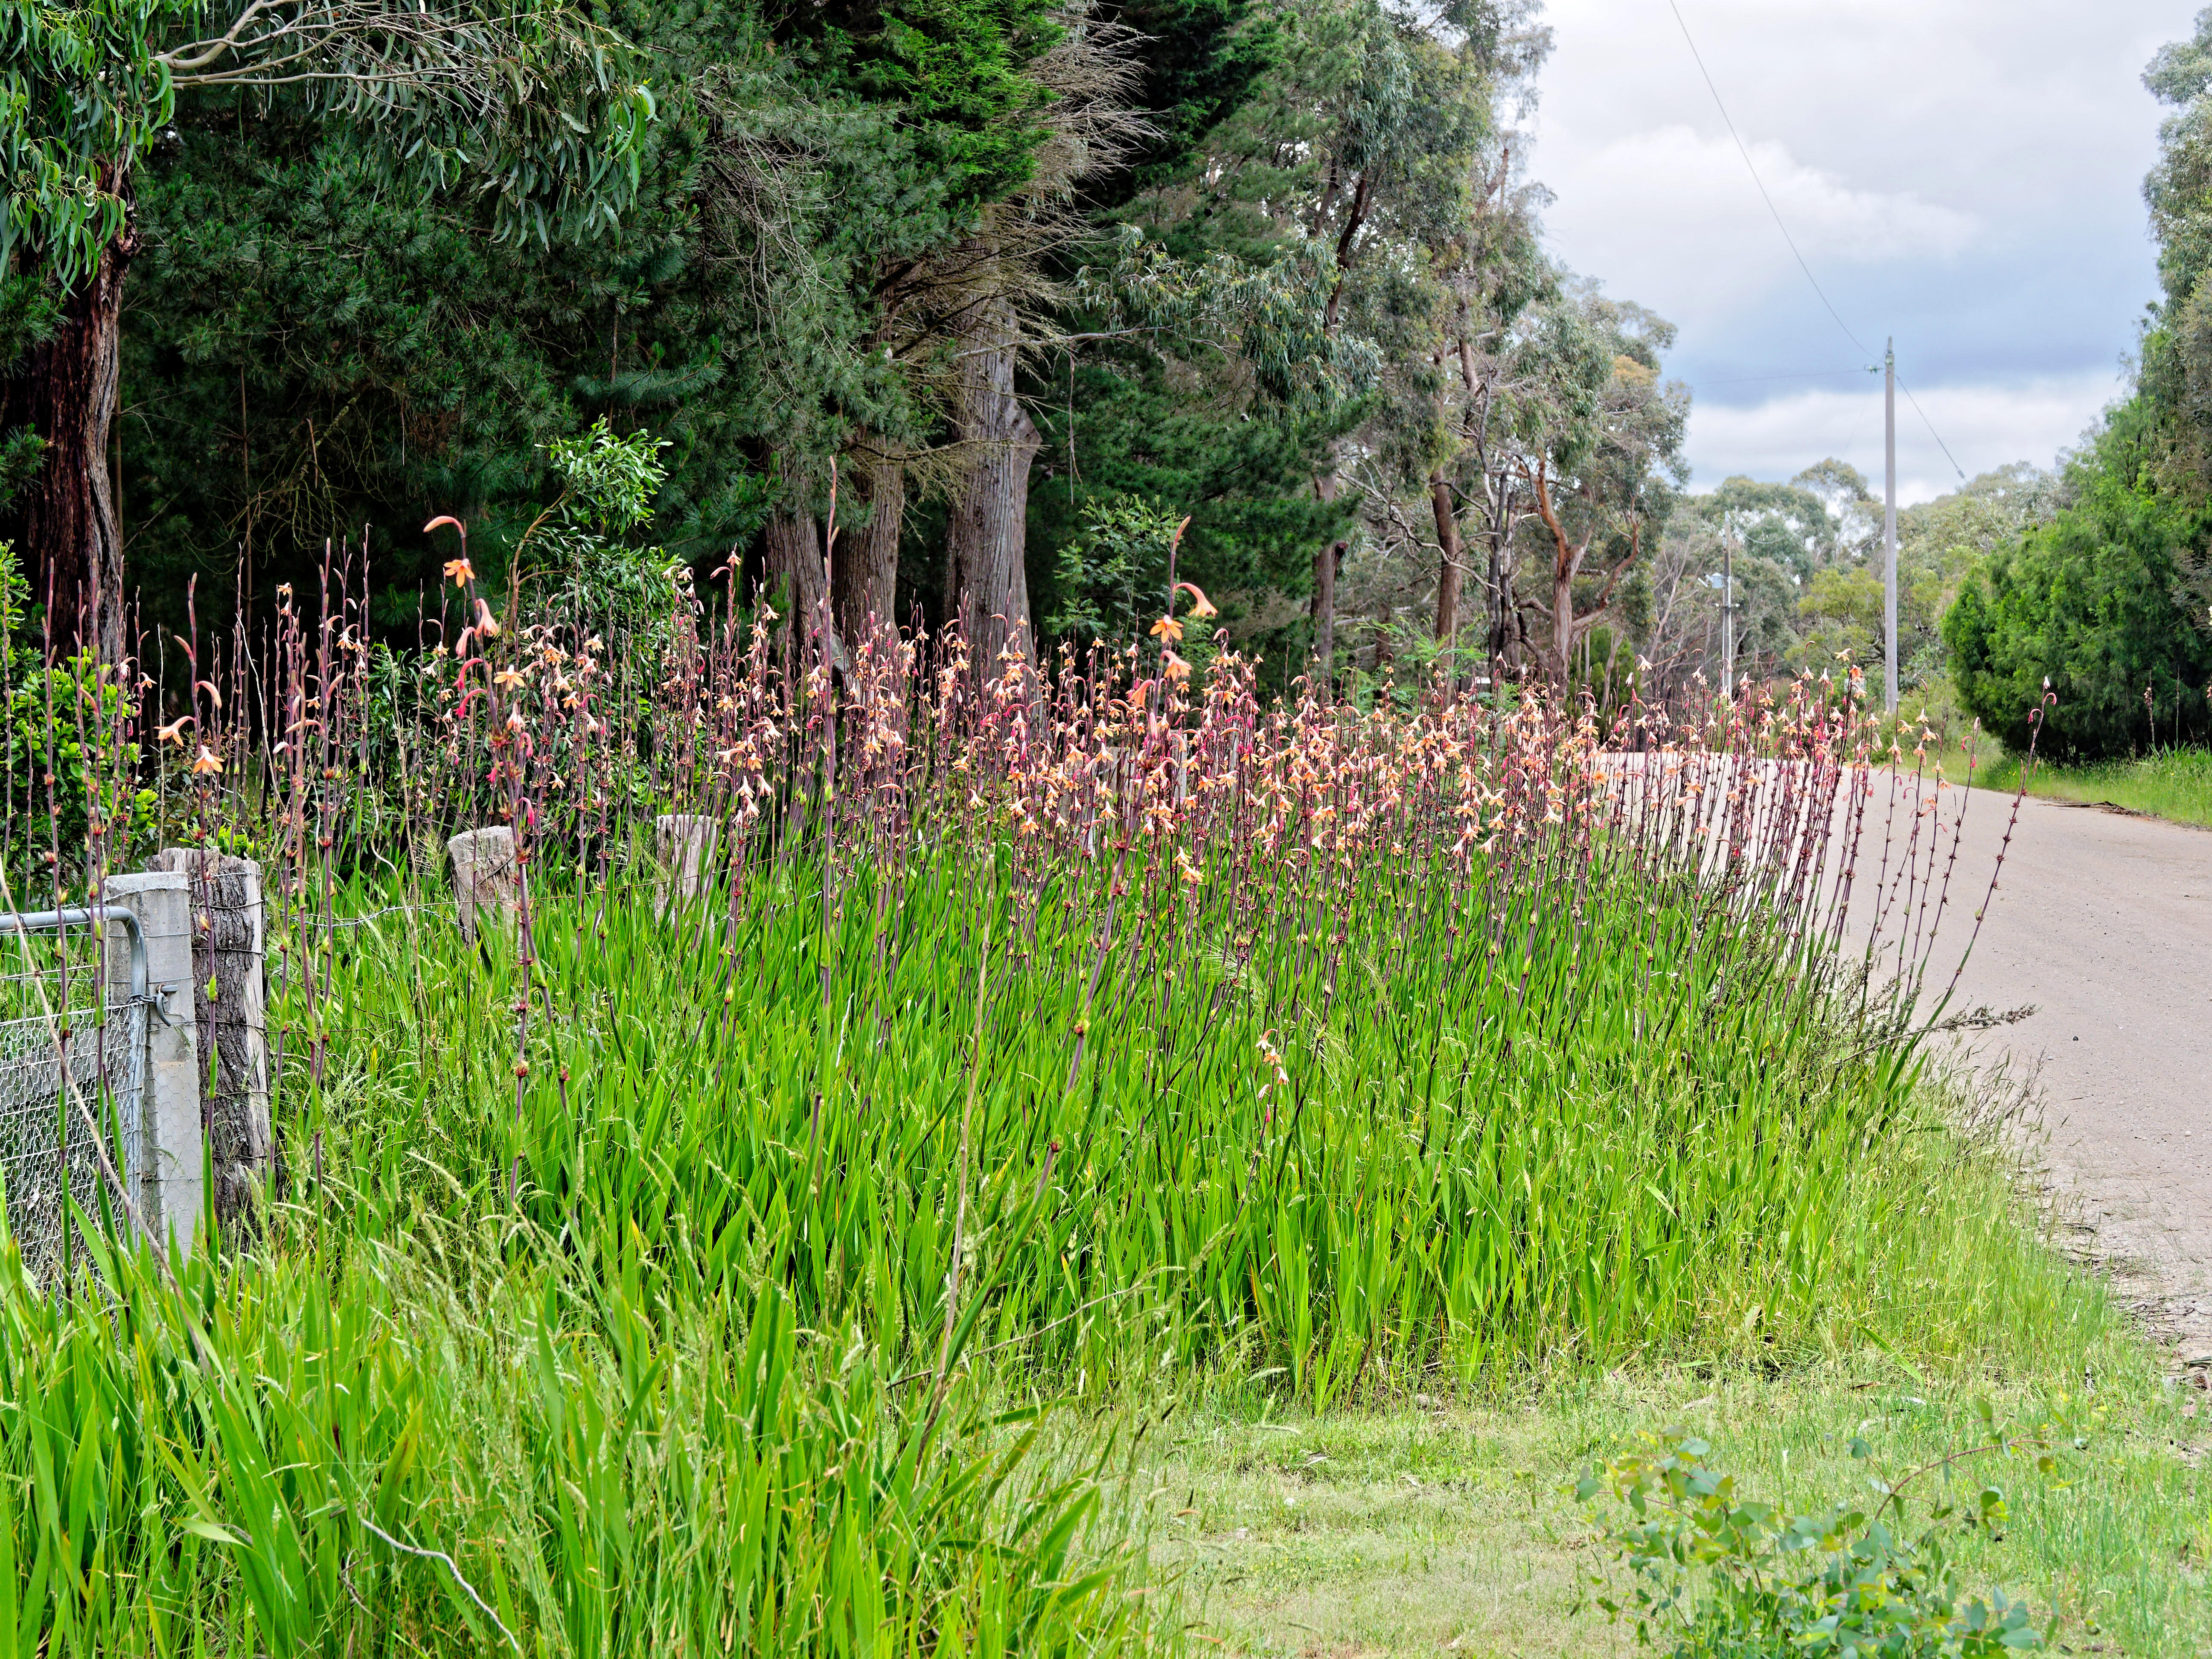 This should be Watsonia.jpeg.  Is it missing?